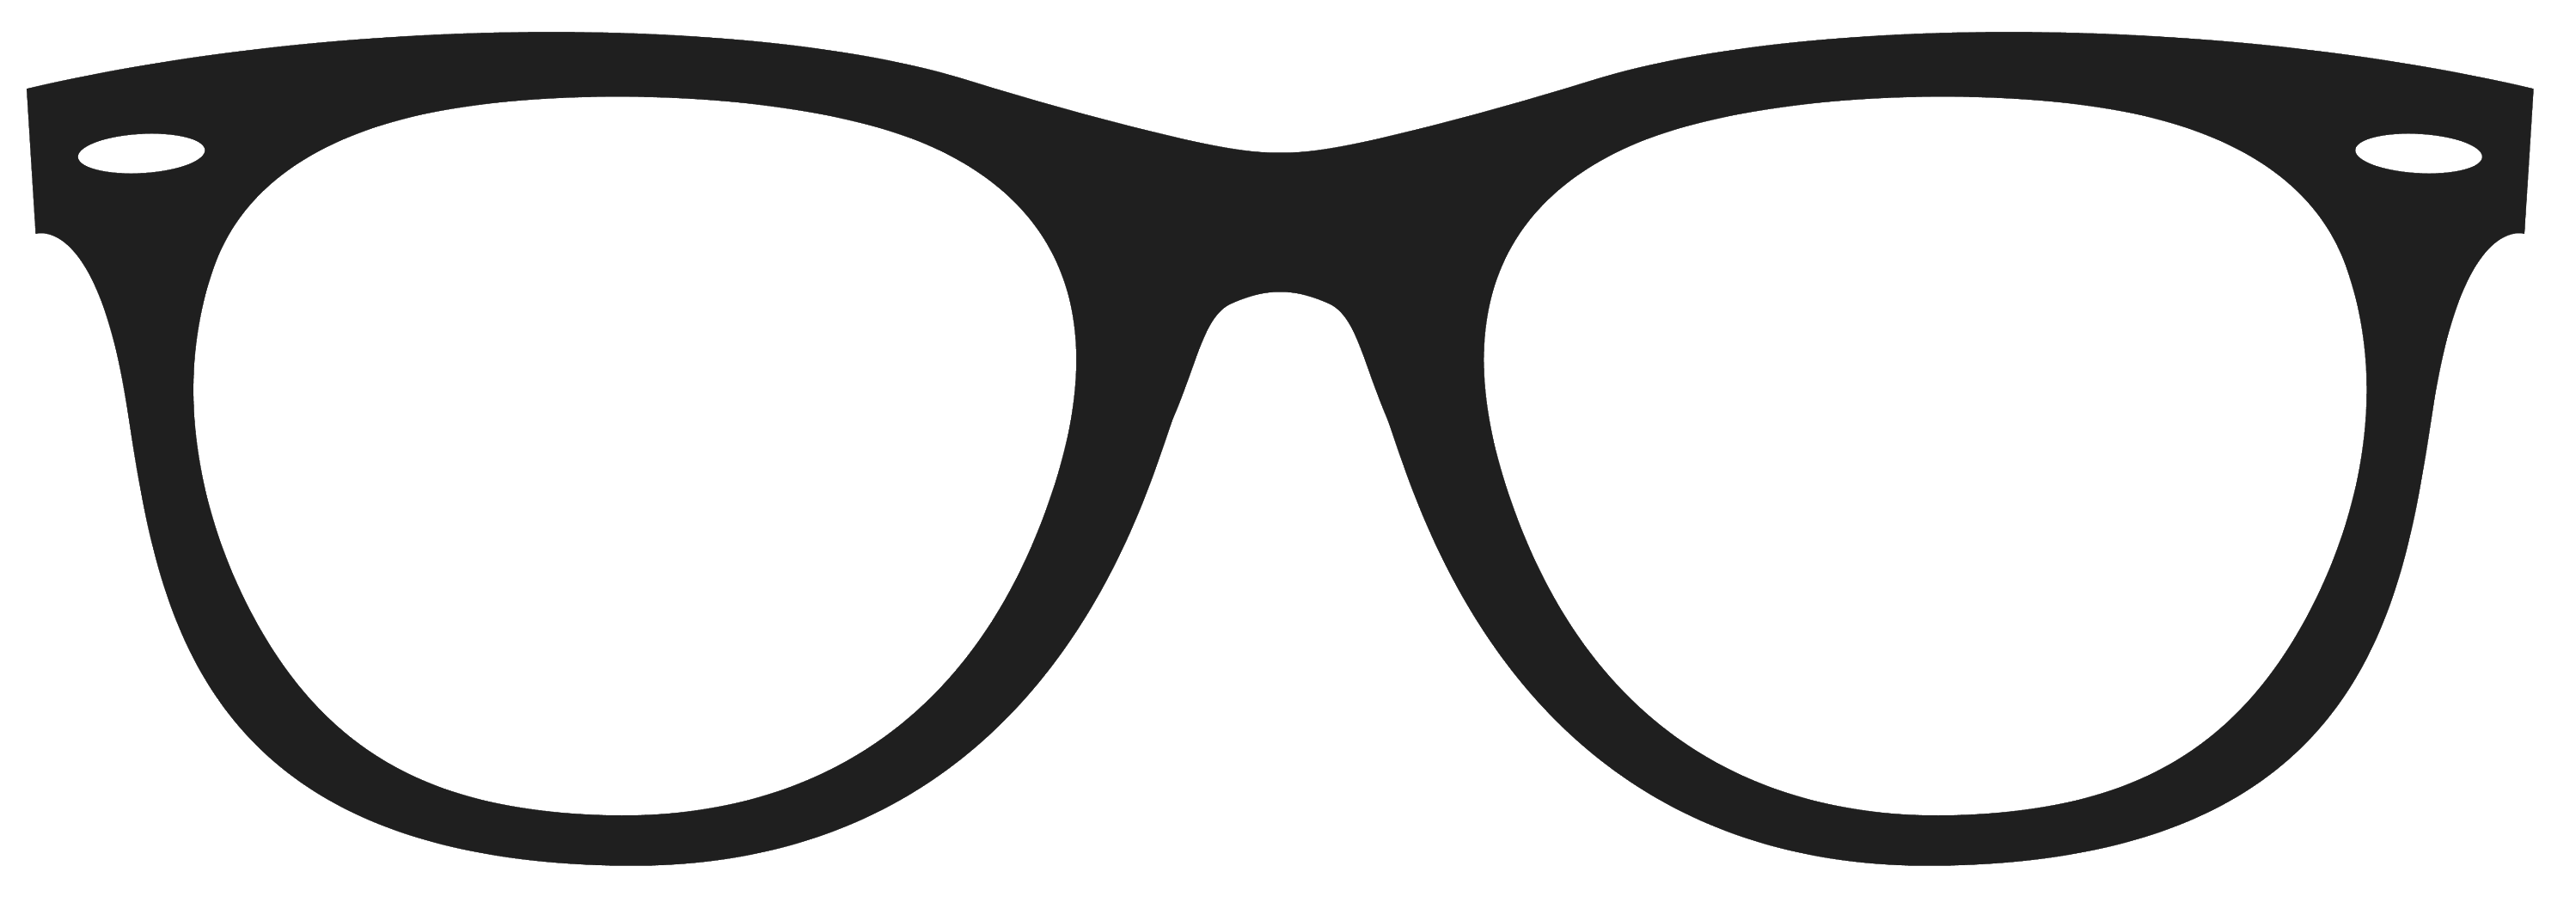 Sunglasses Png Clipart Picture Glasses Png Image Clip Art Clipart Images Mirrored Lens Sunglasses